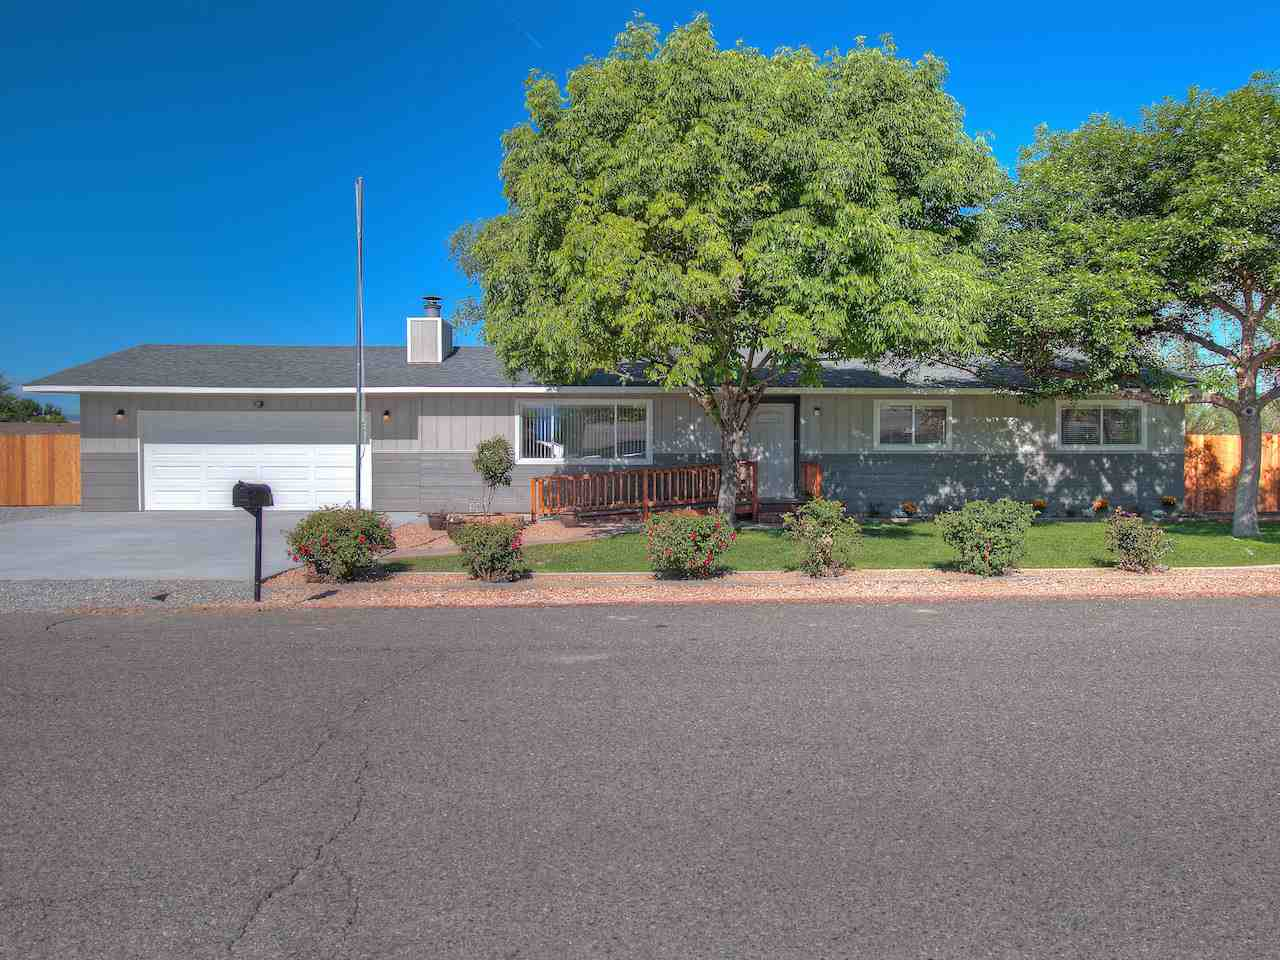 495 31 1/4 Road, Grand Junction, CO 81504